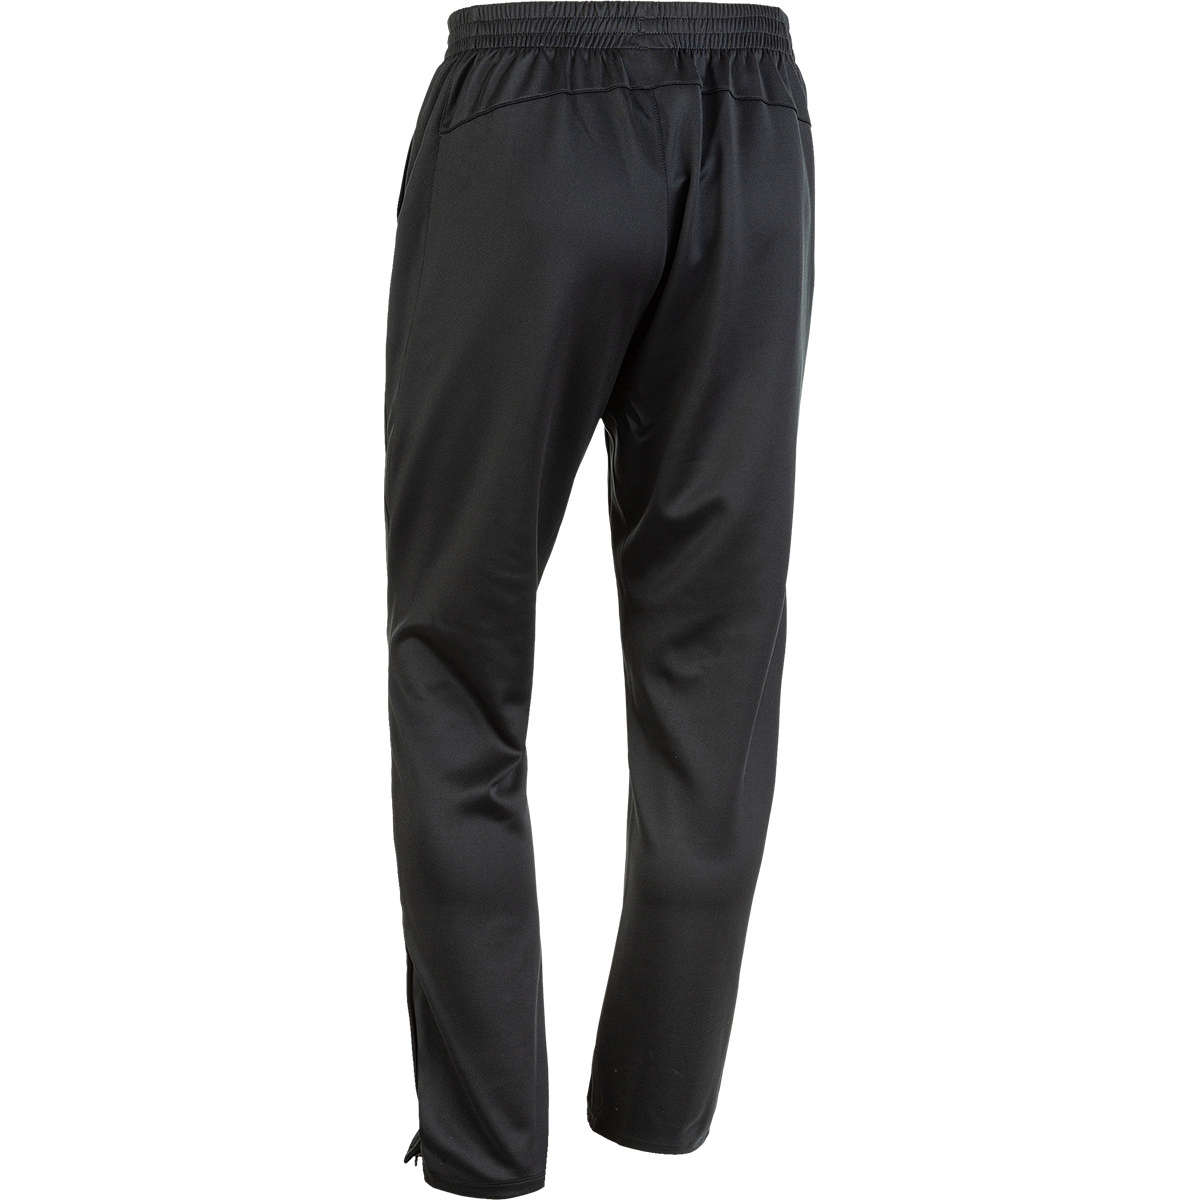 FZ Perry M pant